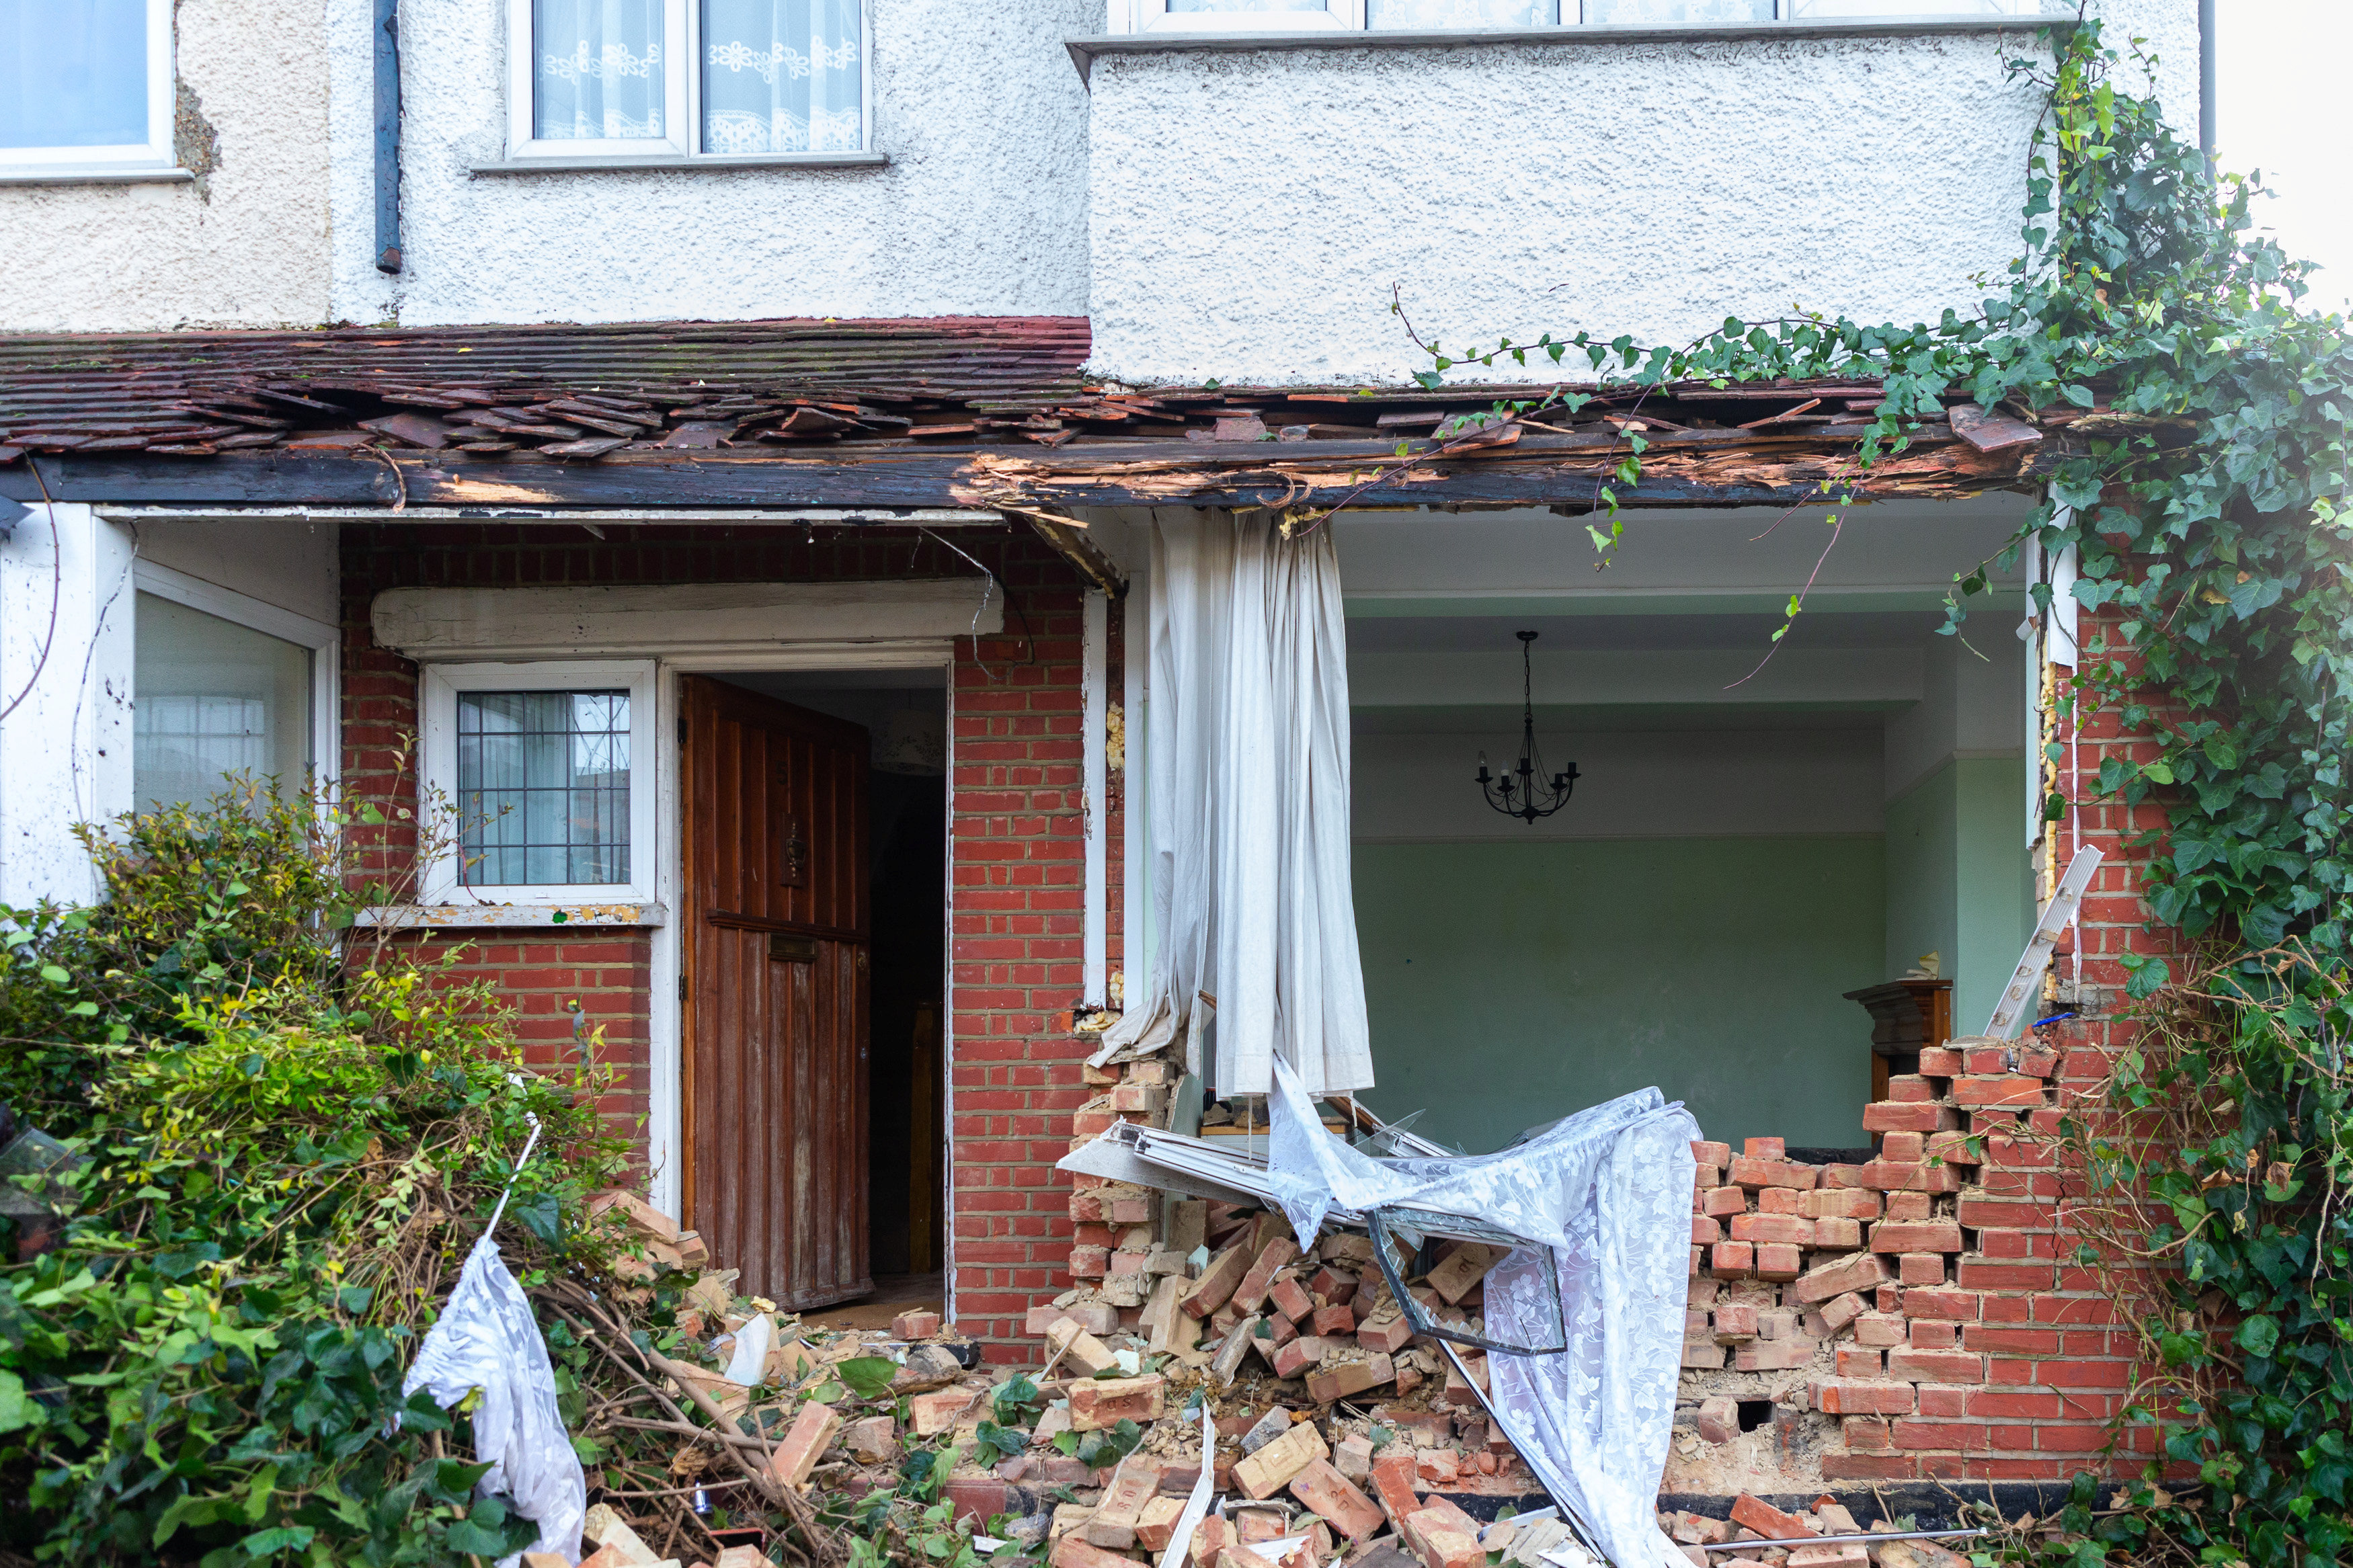 London Double-Decker Bus Crashes Into Front Garden